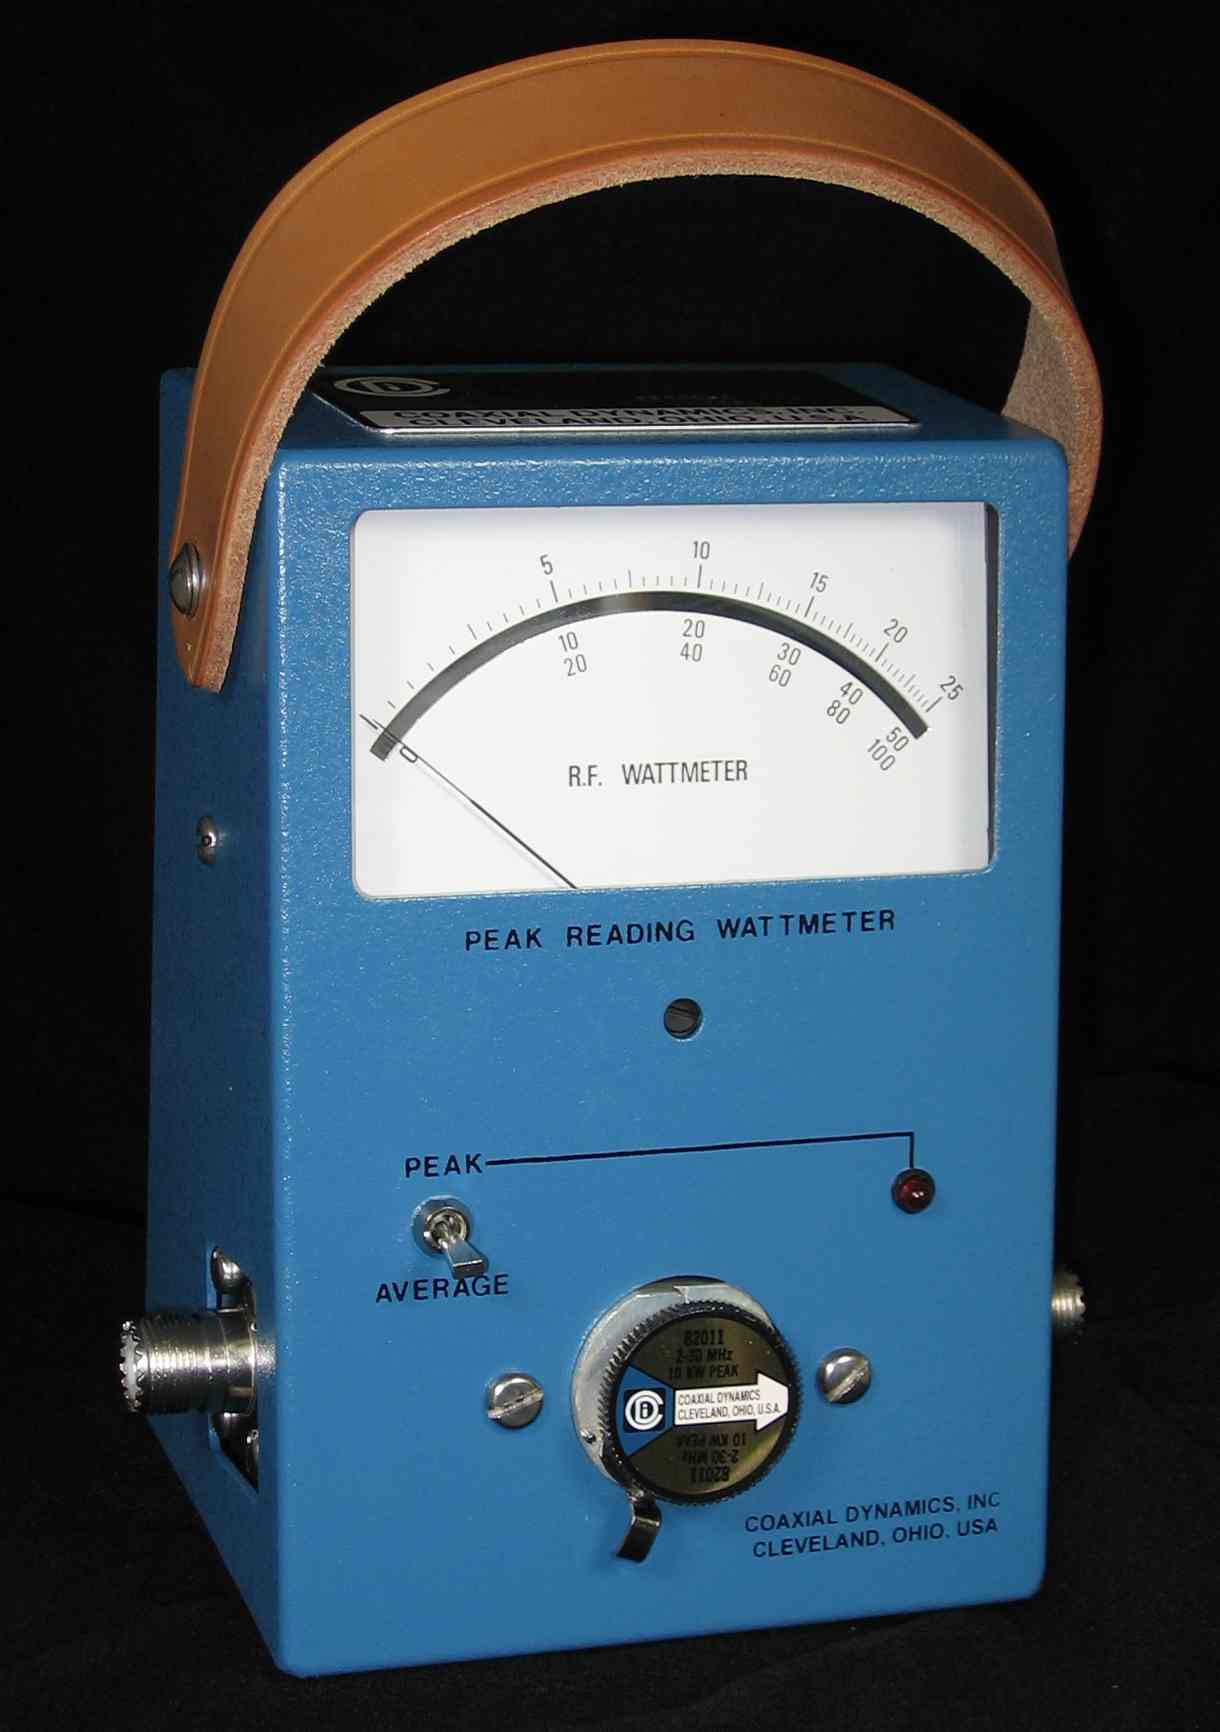 The RF Shop Coaxial Dynamic Wattmeters